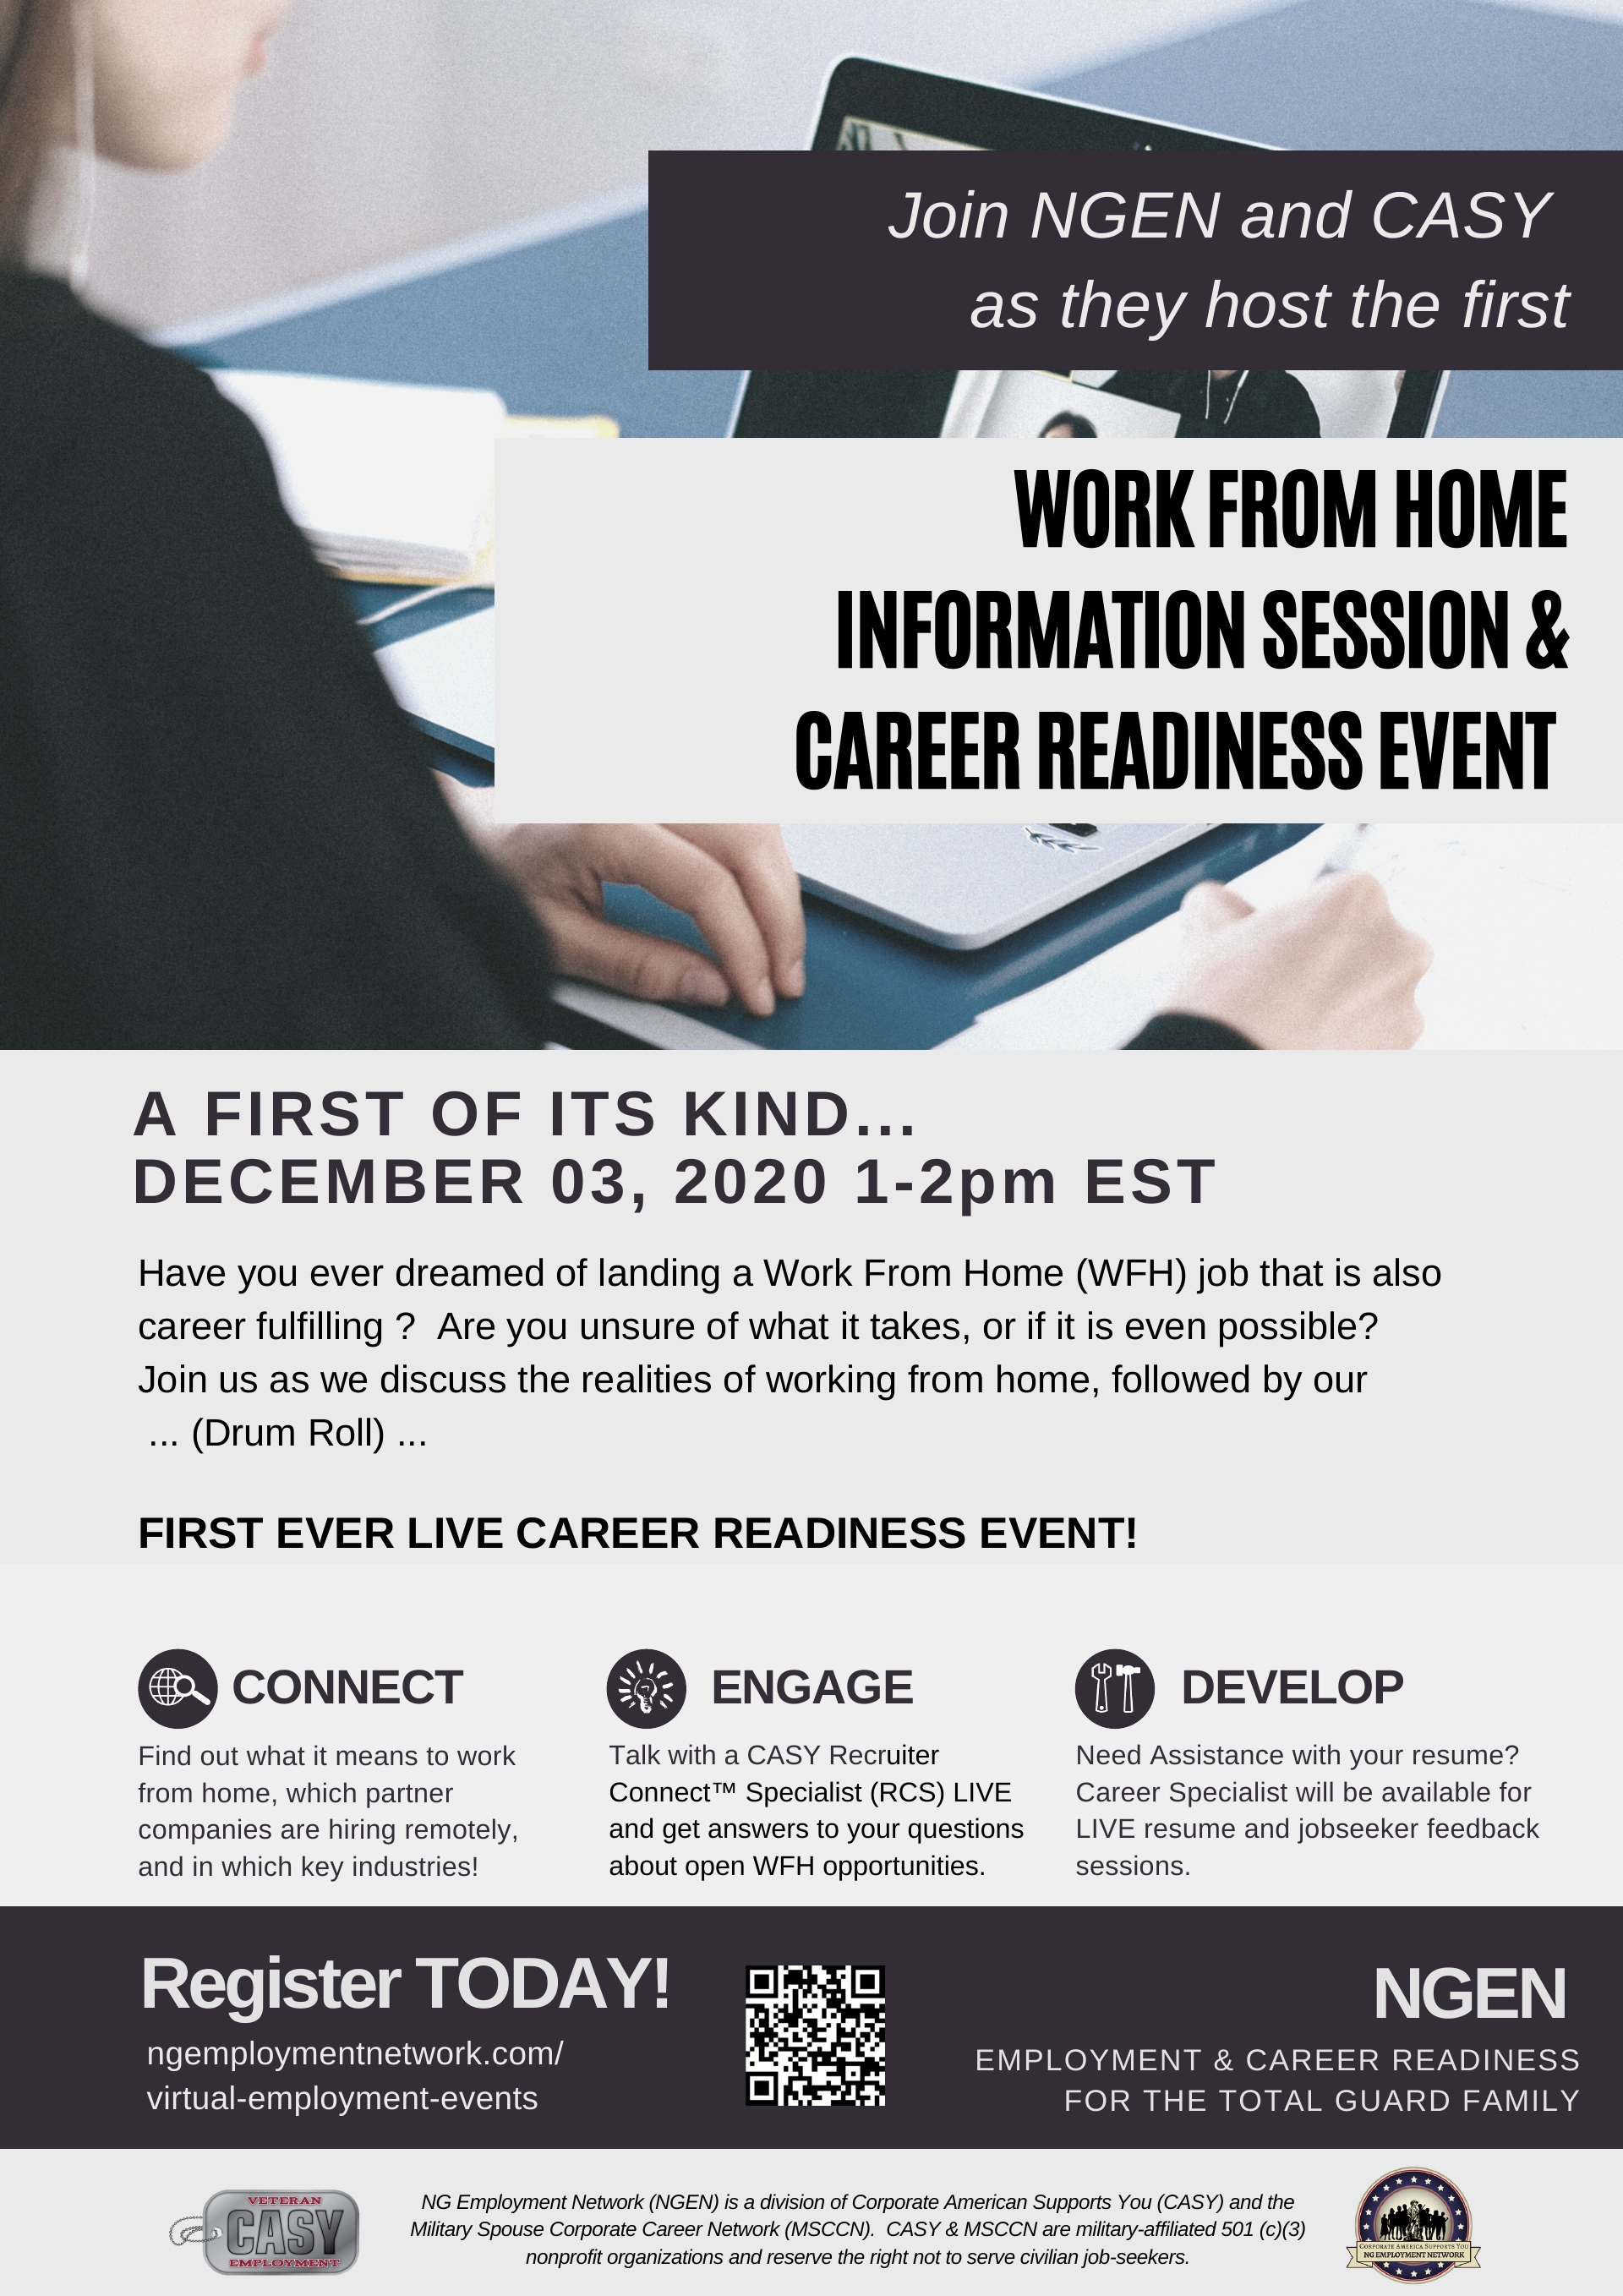 EMPLOYMENT & CAREER READINESS FOR THE TOTAL GUARD FAMILY Virtual Training Event Dec. 3 2020